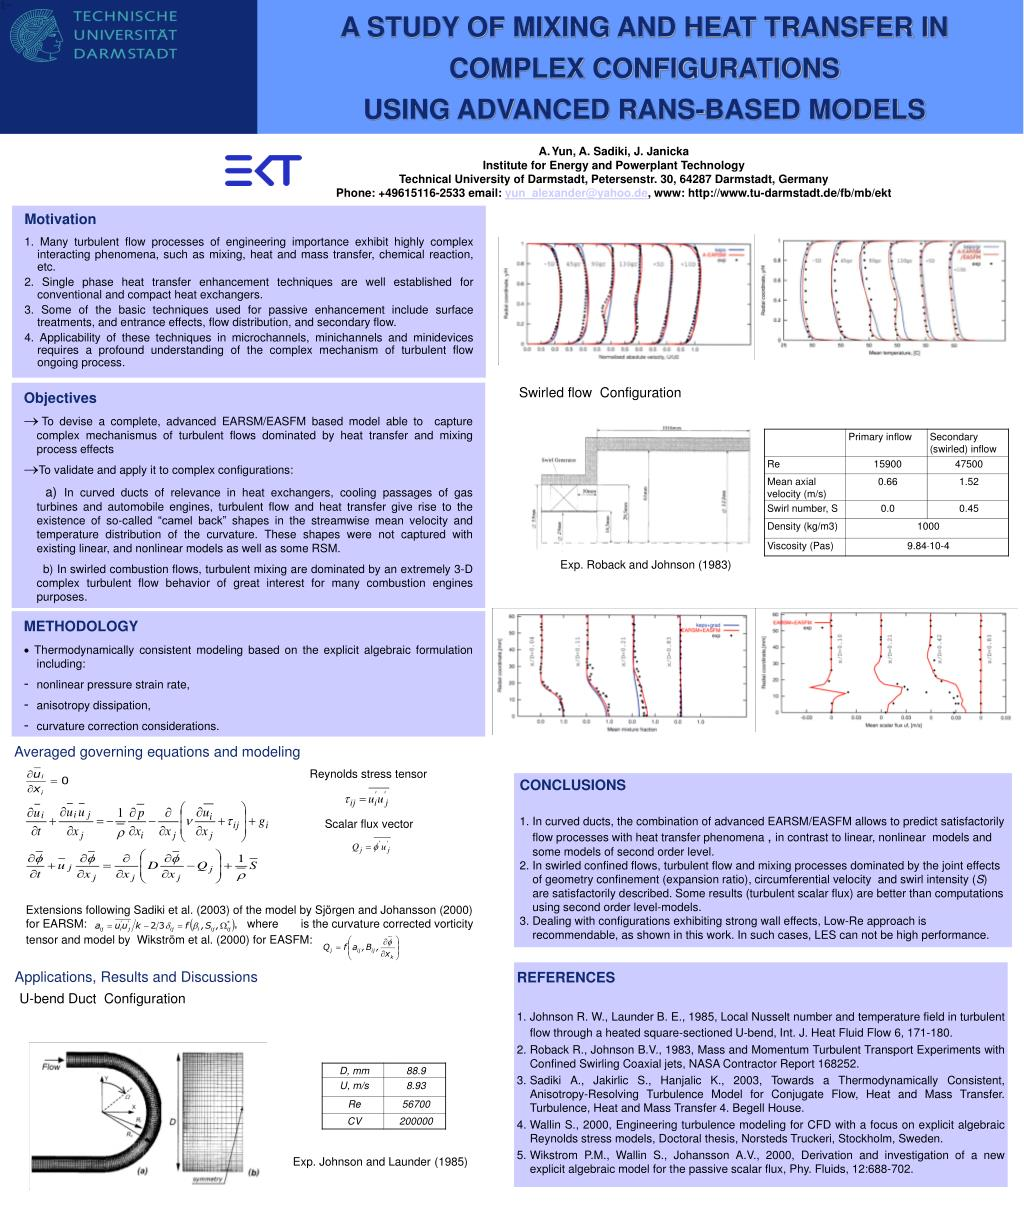 a study of mixing and heat transfer in complex configurations using advanced rans based models